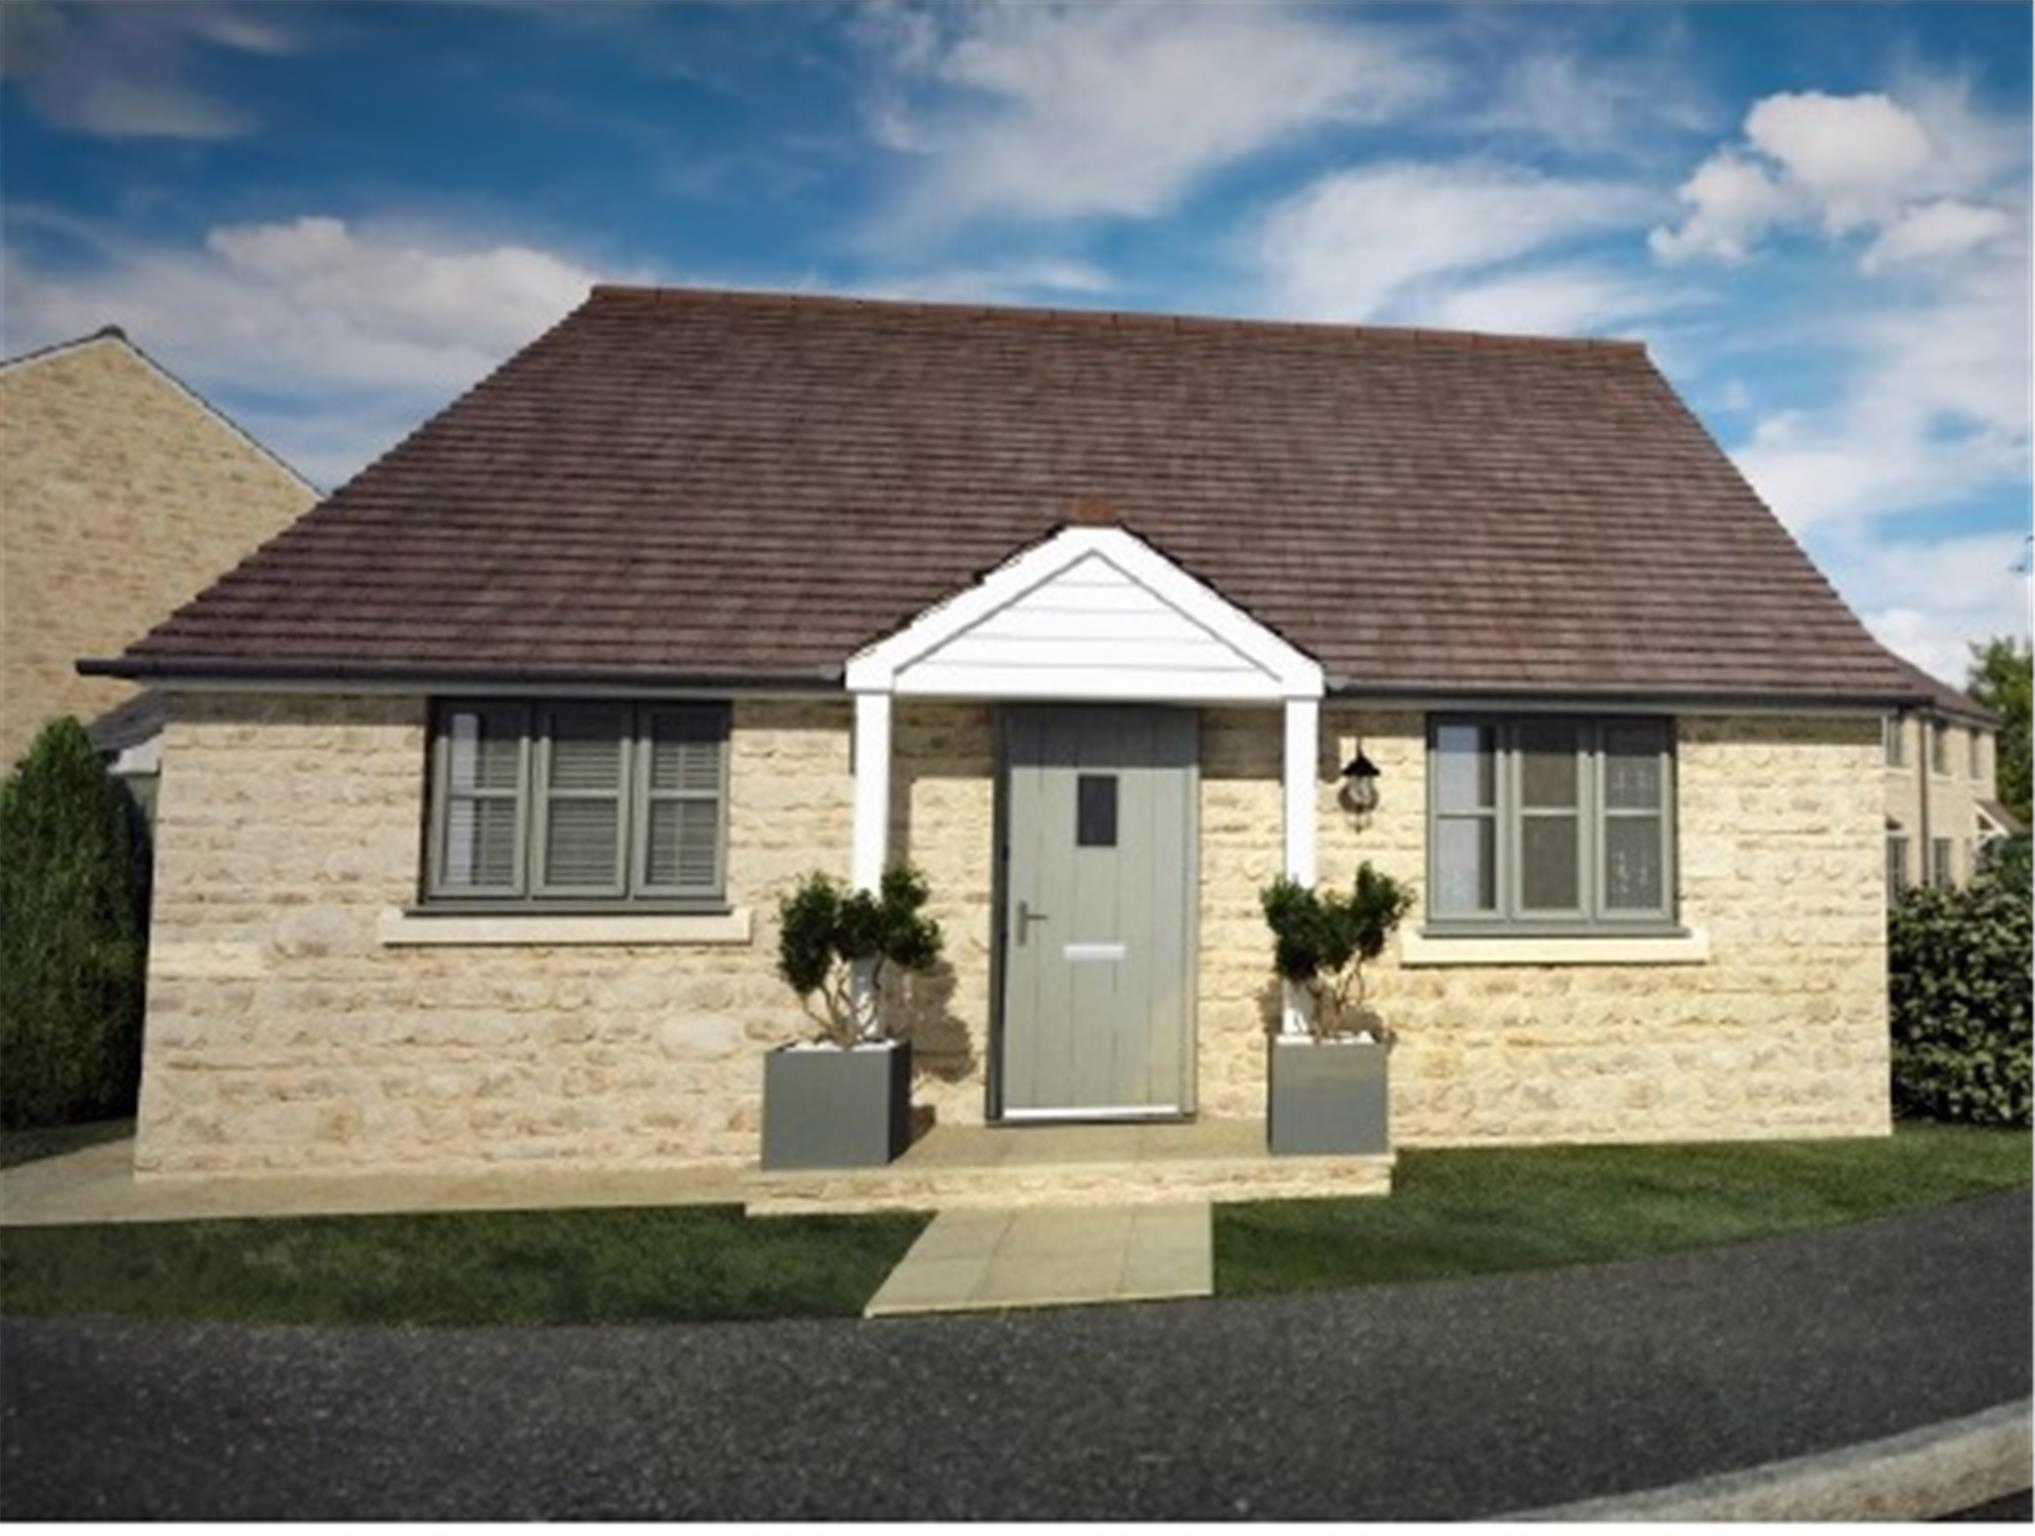 Plot 52, The Cheltenham, Blunsdon Meadow, Swindon SN25